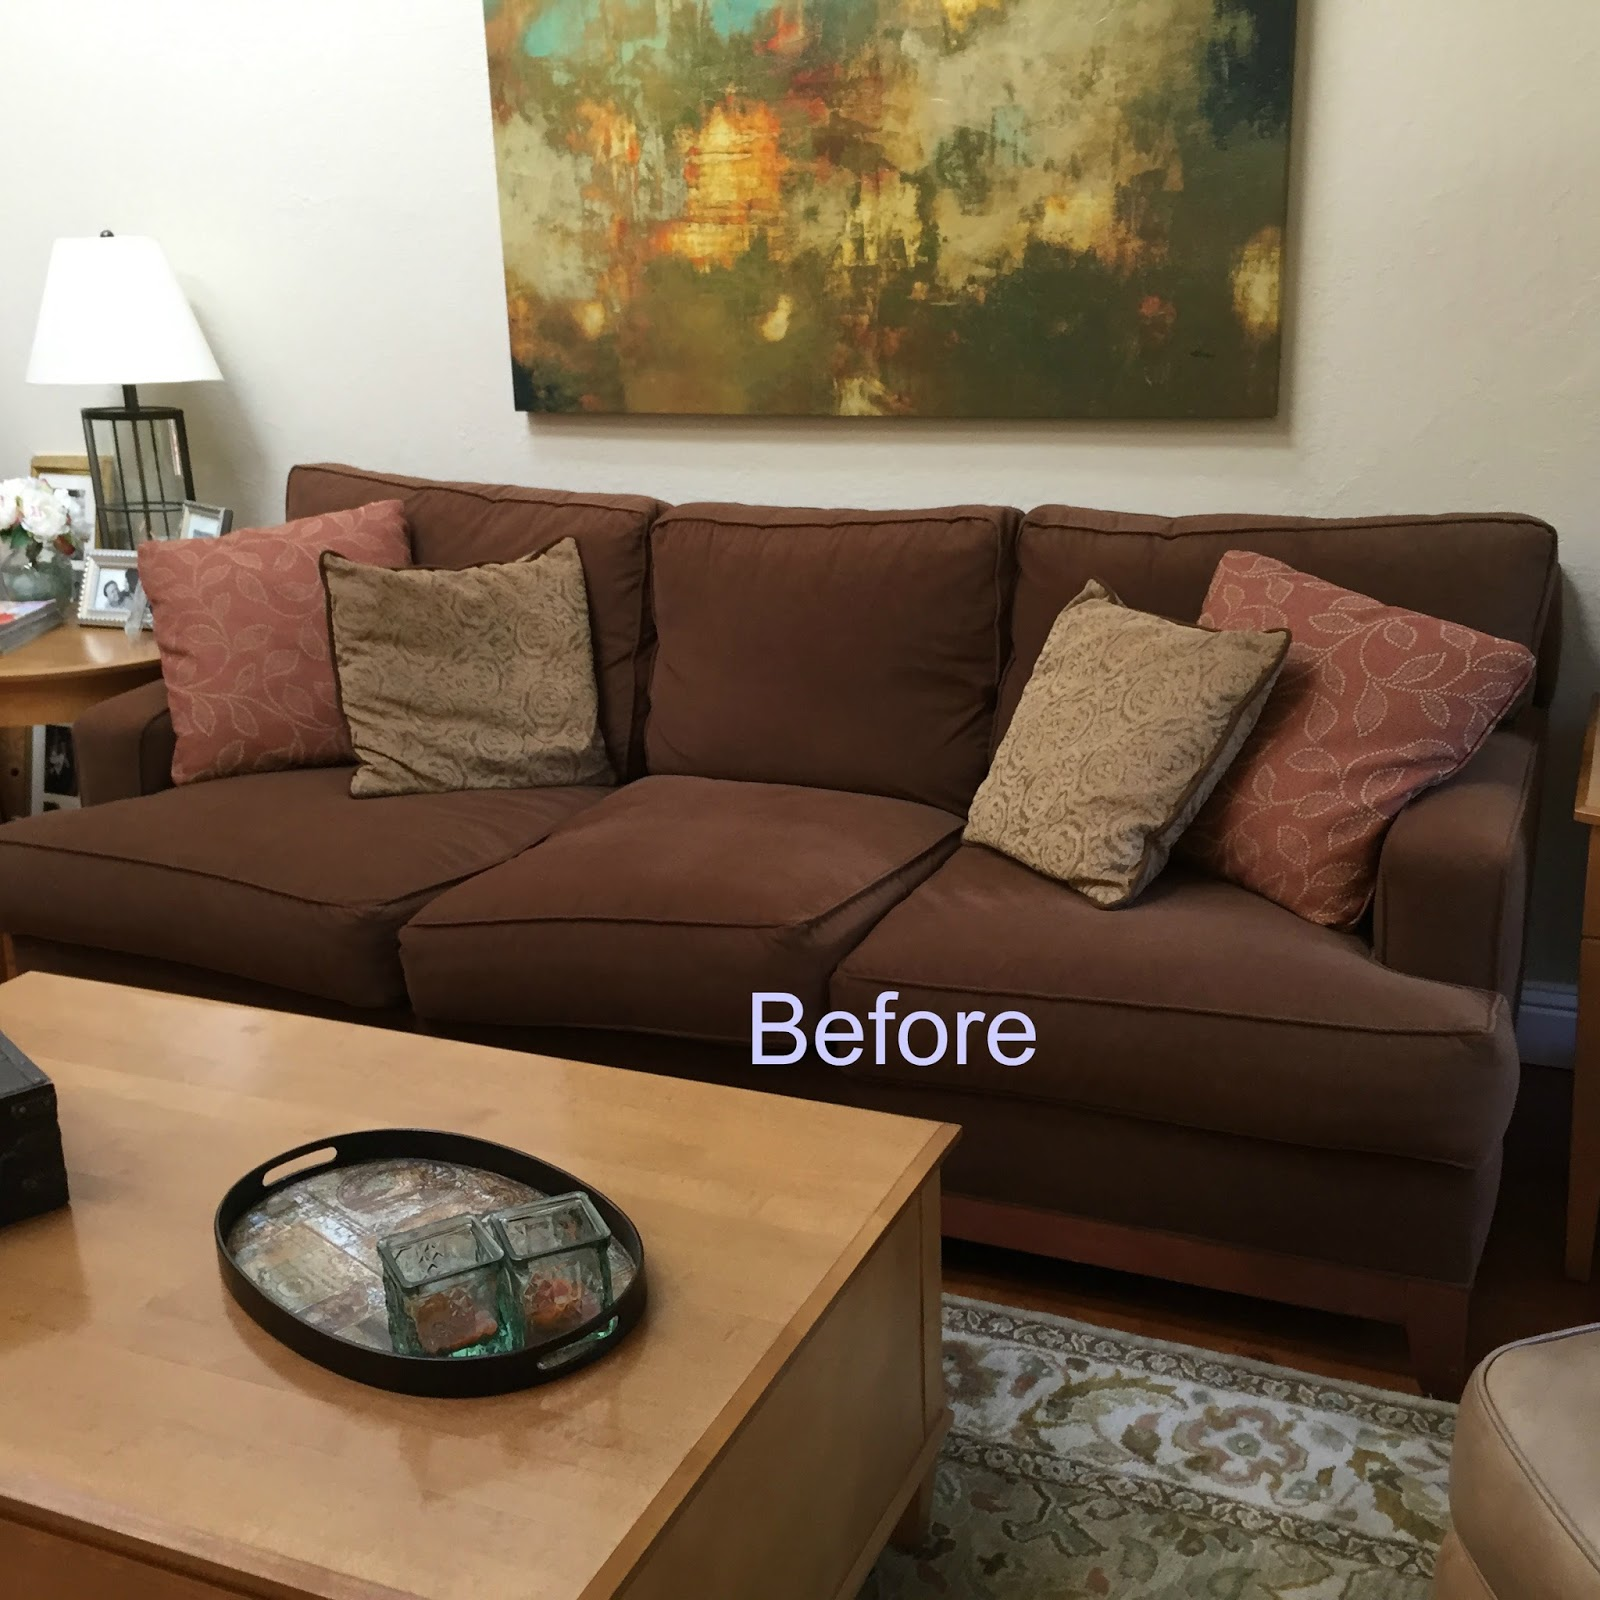 Throw Pillows For A Chocolate Brown Couch : classic casual home: Brown Couch Blues: Mini-Makeover Before and After